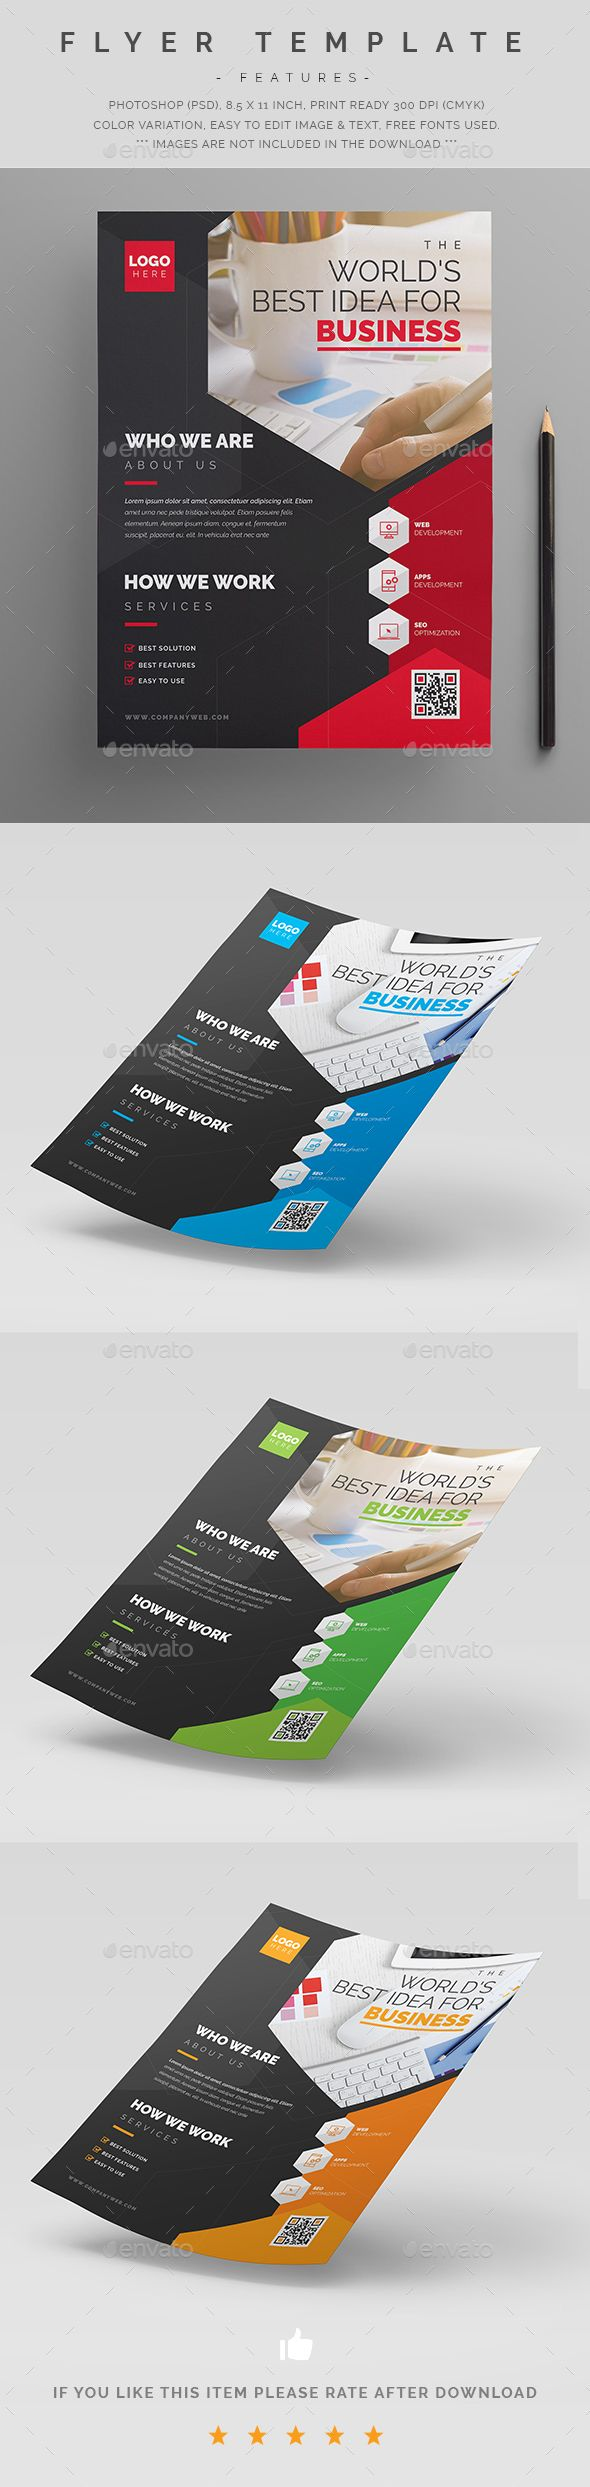 Business Flyer Template PSD